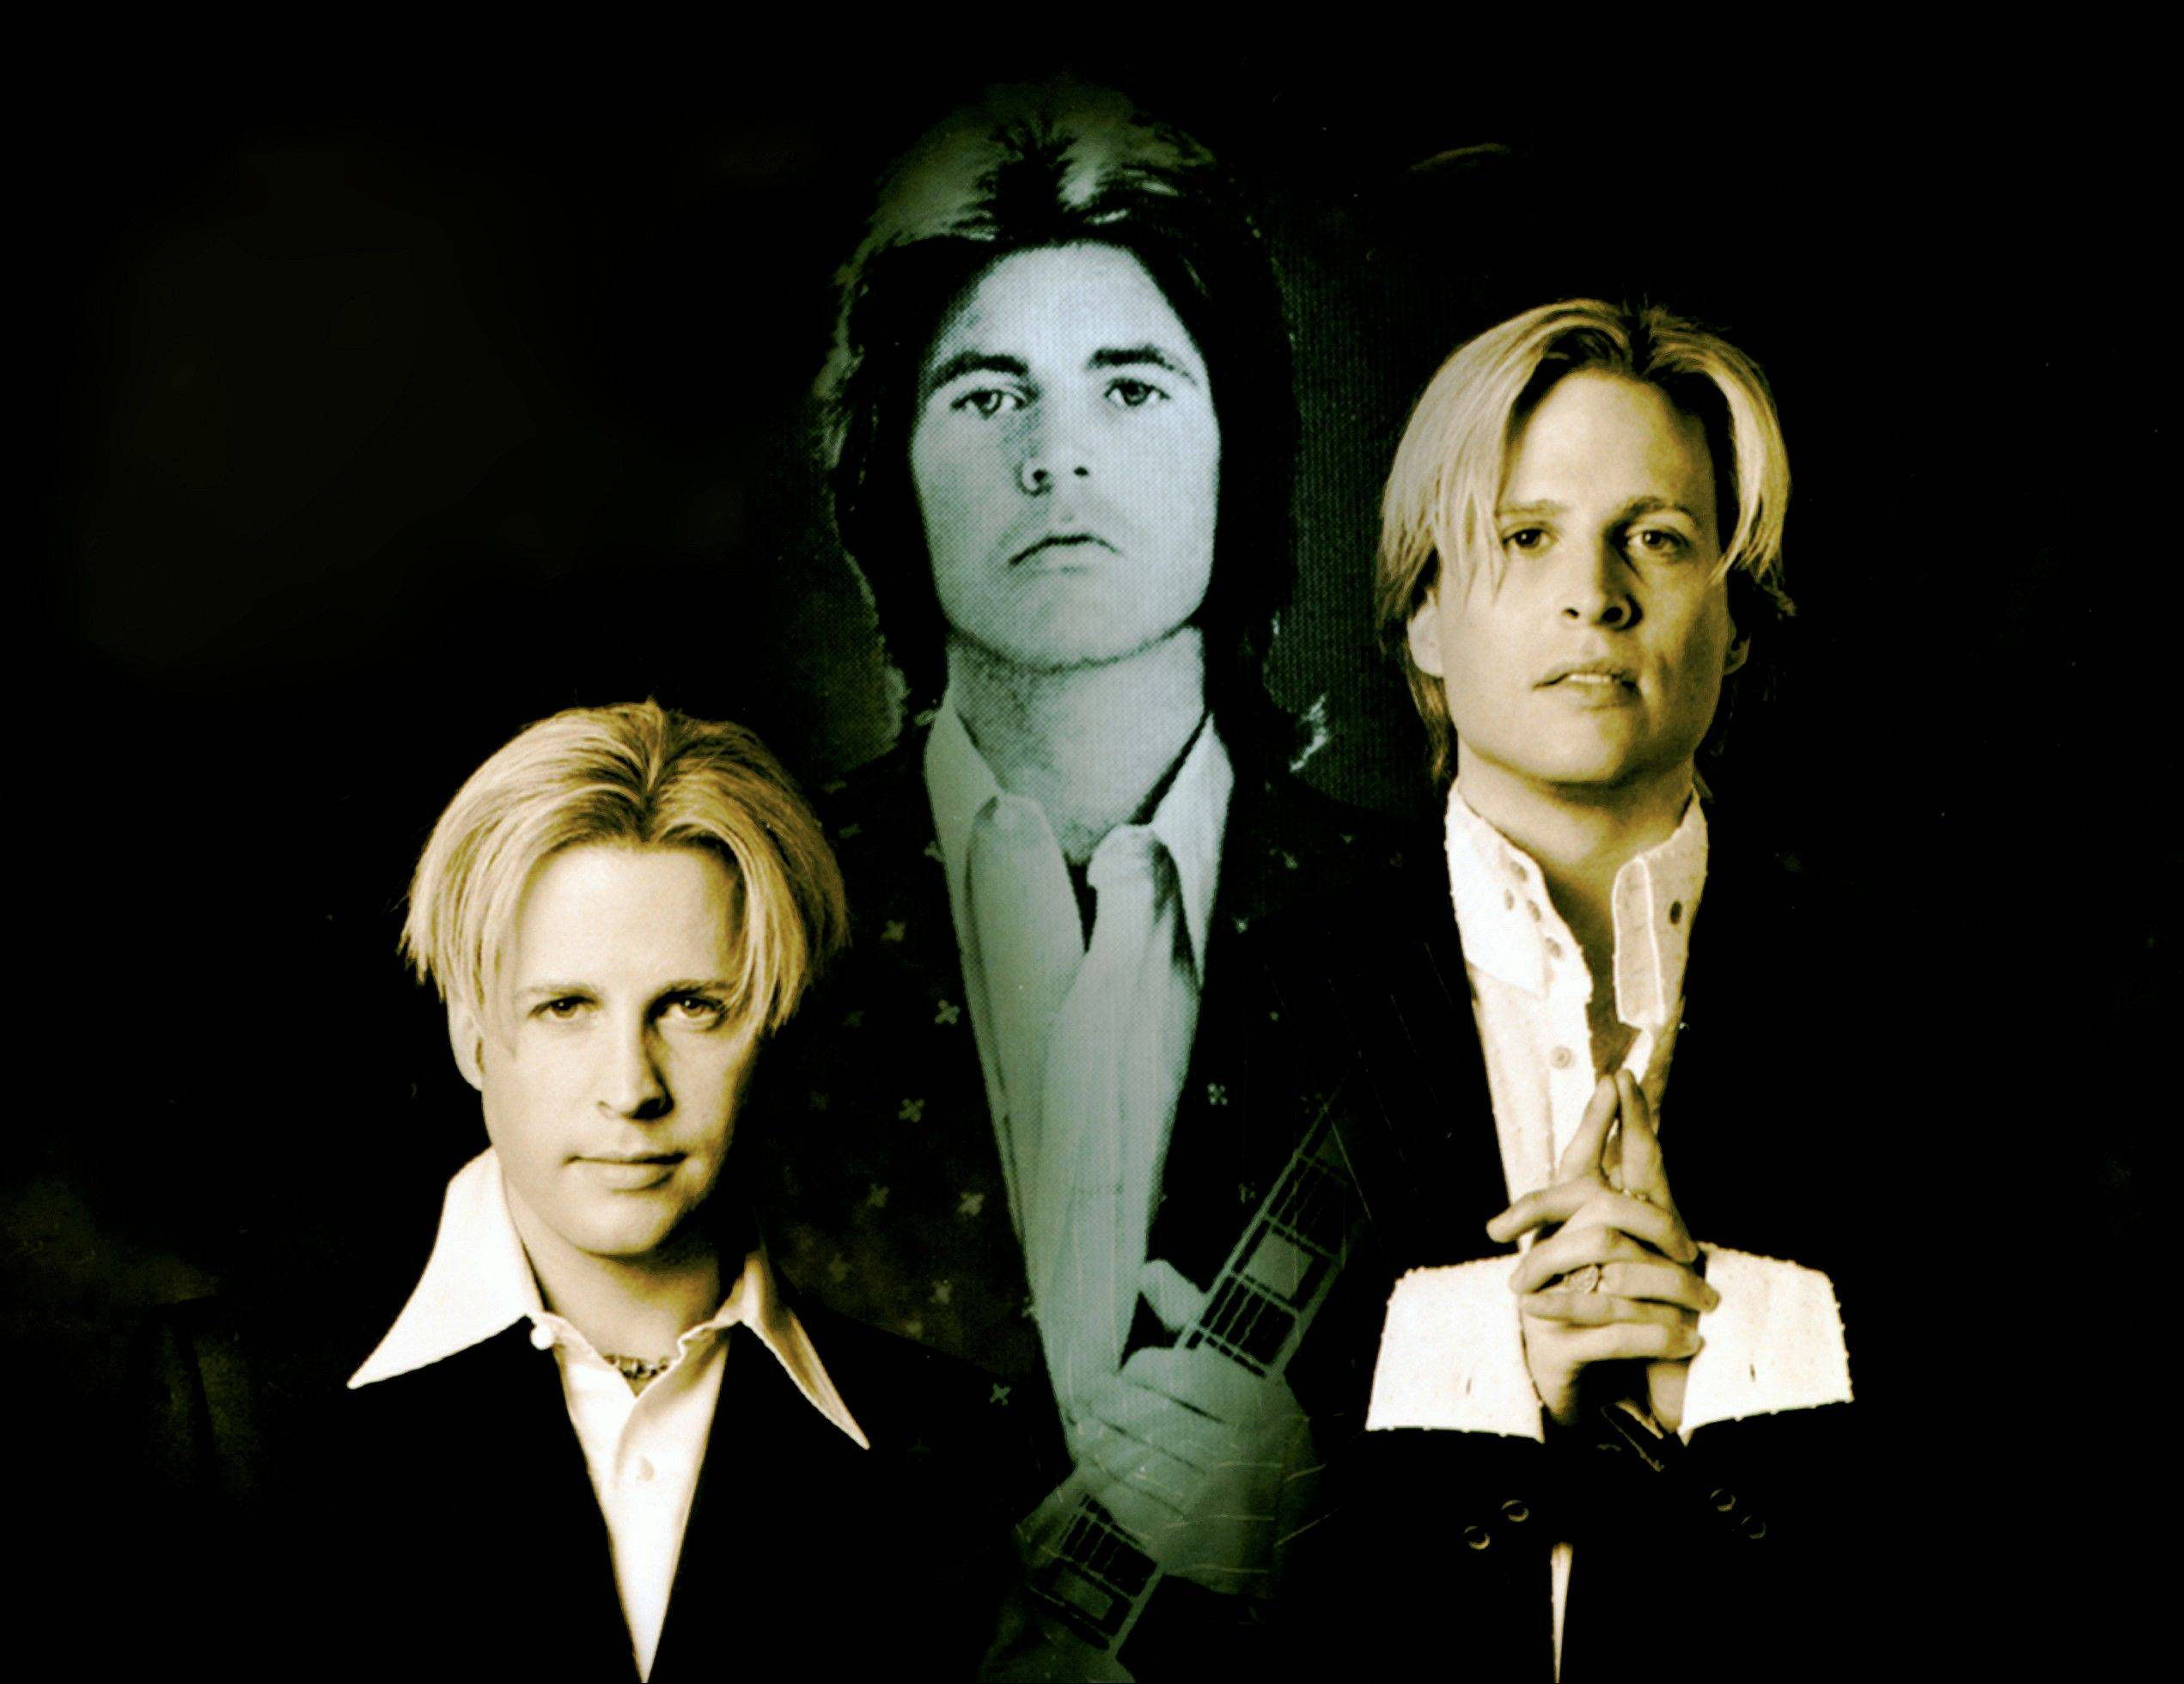 Matthew Nelson, left, and his twin brother Gunnar, sons of the late 1950s teen idol Ricky Nelson, present �Ricky Nelson Remembered� on Sunday, March 30, at the Arcada Theatre in St. Charles. Tickets are now on sale.